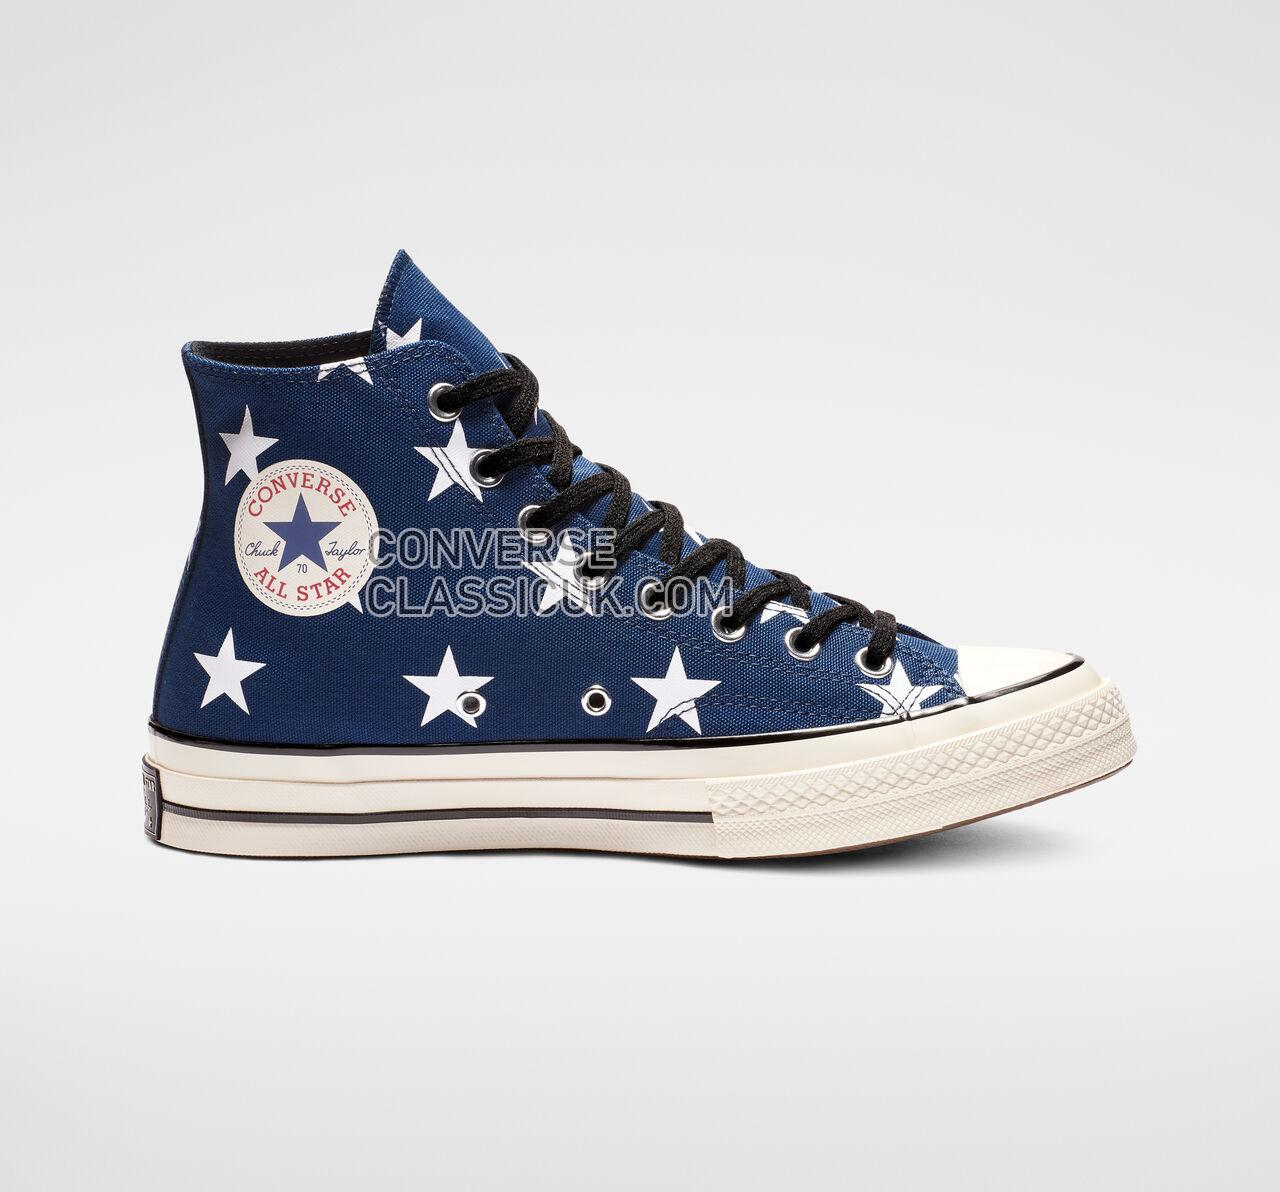 Converse Chuck 70 Archive Print High Top Mens Womens Unisex 163409C Navy/White/Egret Shoes